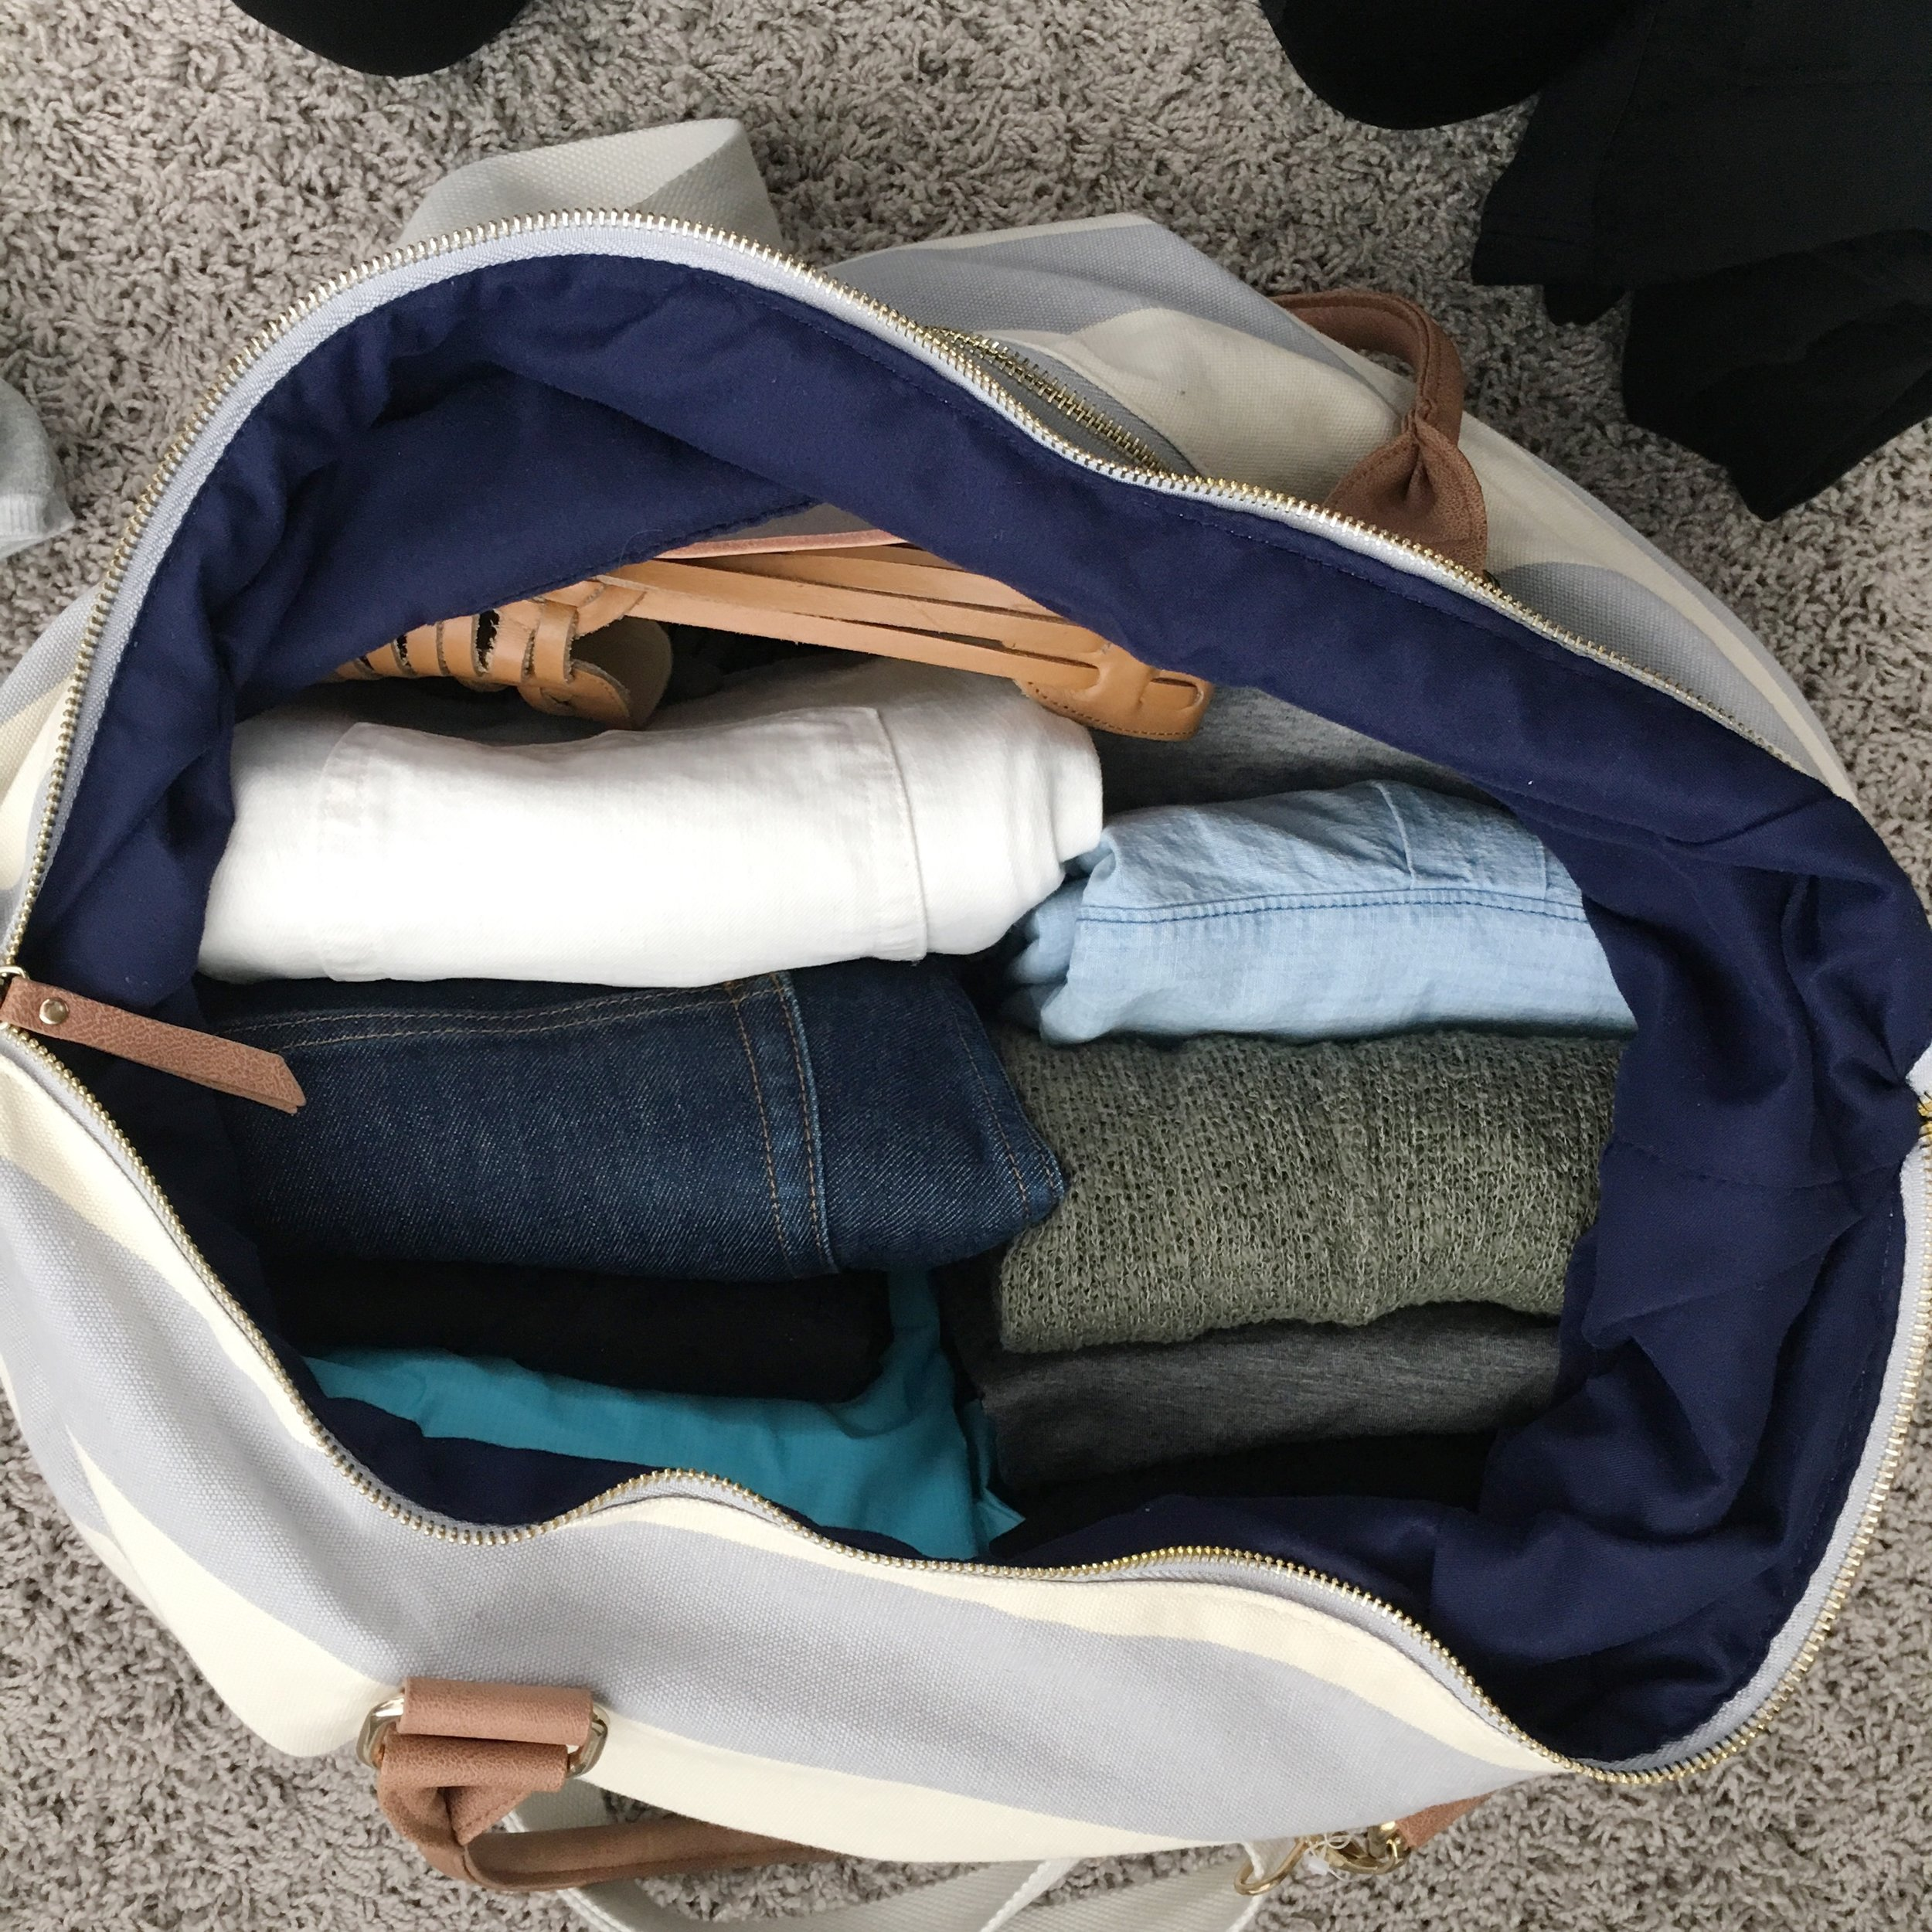 Filled duffle bag for 2 weeks of travel